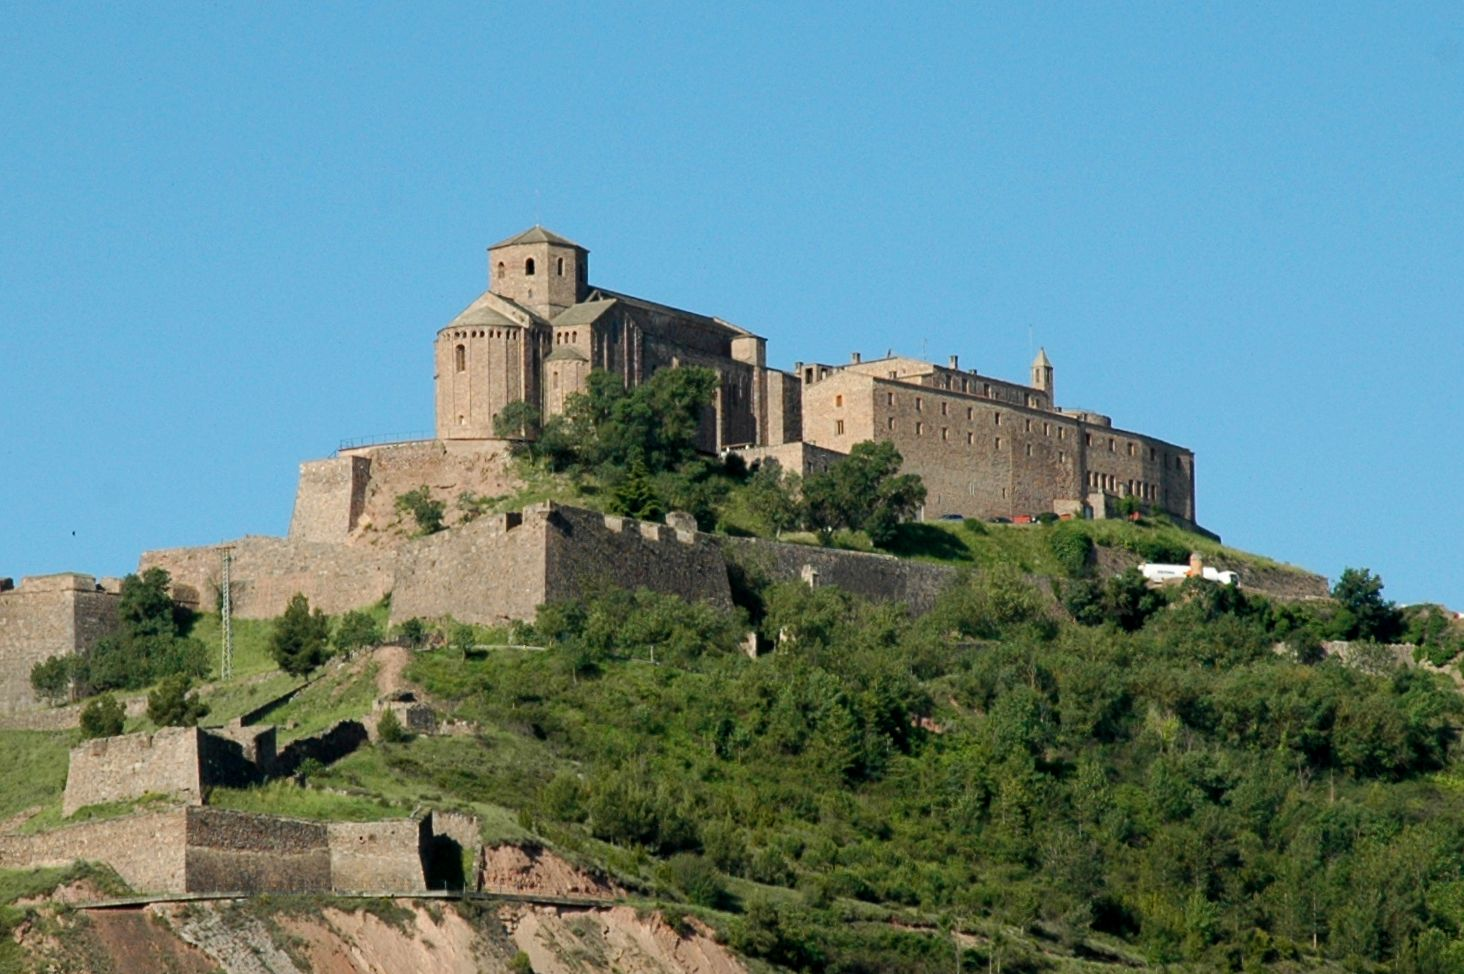 Cardona Spain  City pictures : Castell de Cardona Wikipedia, the free encyclopedia